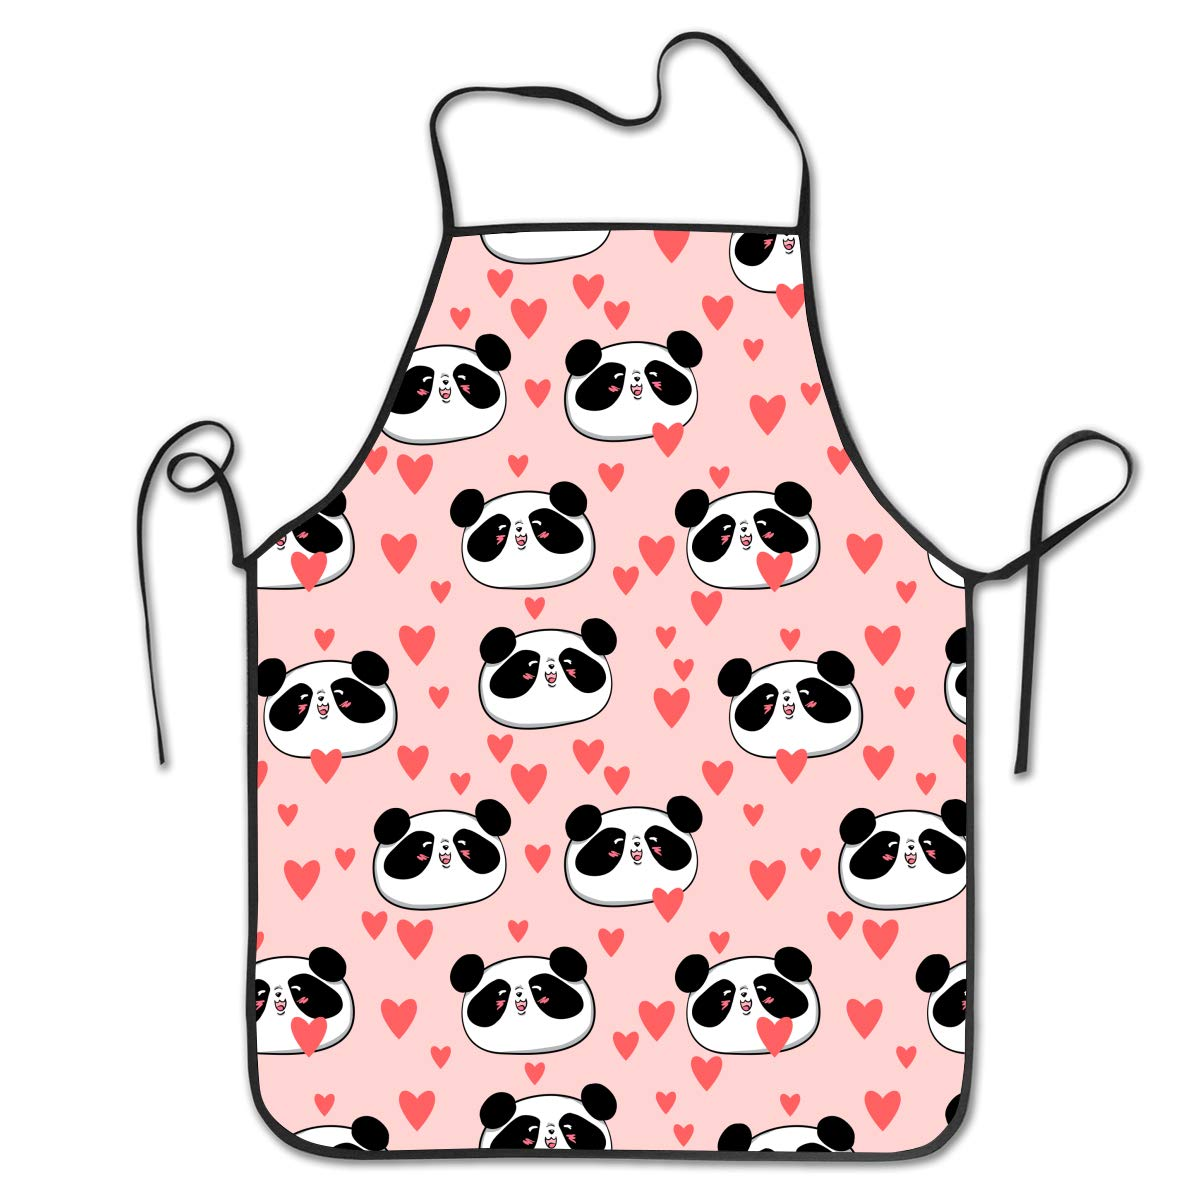 OKAYDECOR Novelty Waterproof Retro Kitchen BBQ Craft Bib Apron Dress for Women Men Pink Animal Panda Love Heart Patterns